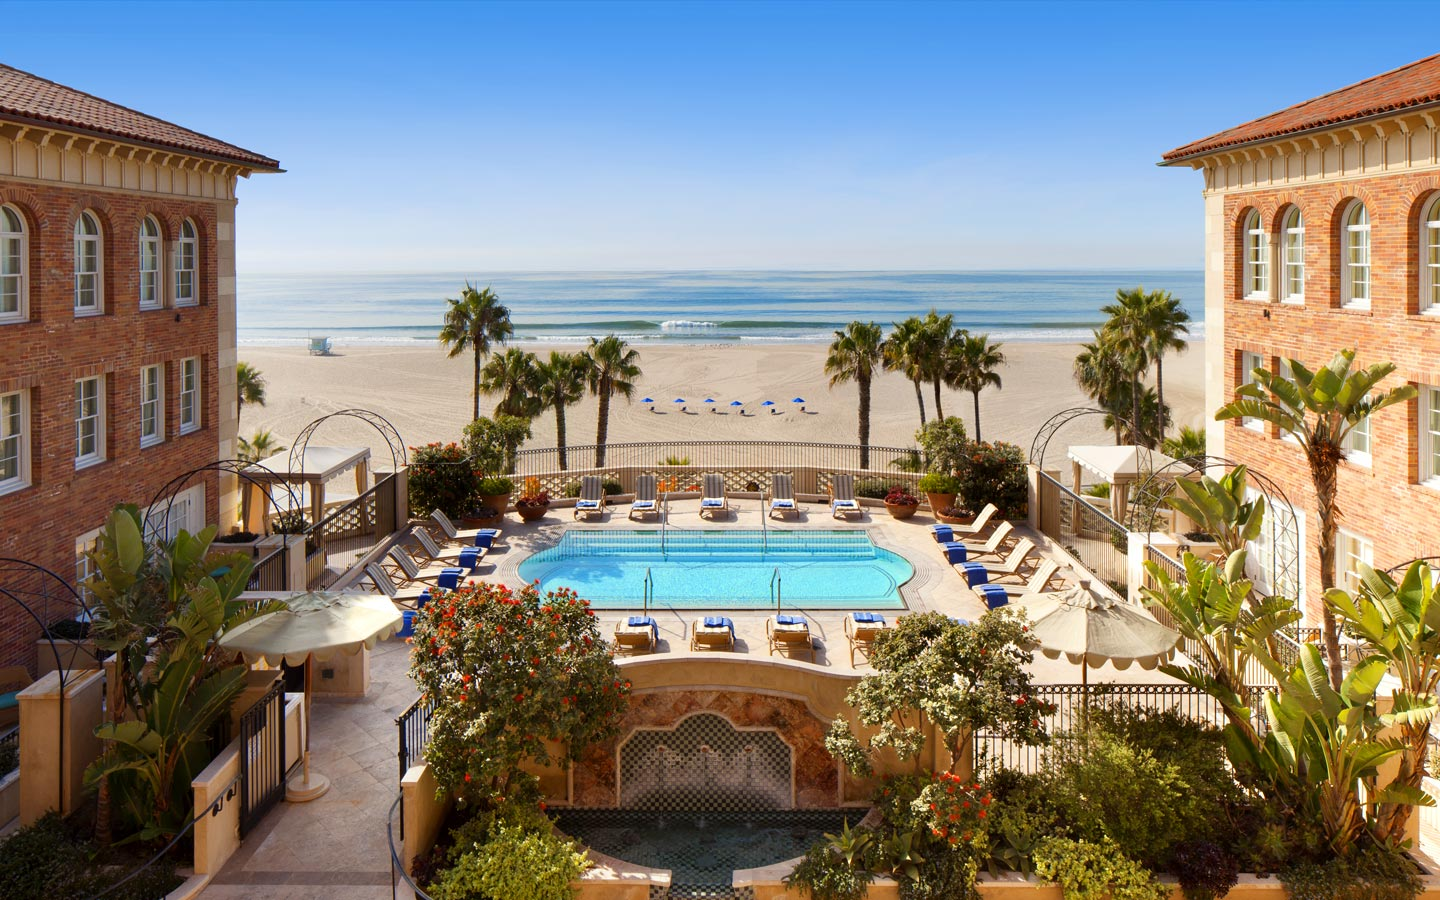 Top Luxury Hotels in America - Hotel Casa del Mar - Santa Monica, CA - Luxury beach hotels LA Top Luxury Hotels in America Top Luxury Hotels in America for the Perfect End of Summer Getaway Hotel Casa del Mar Santa Monica CA